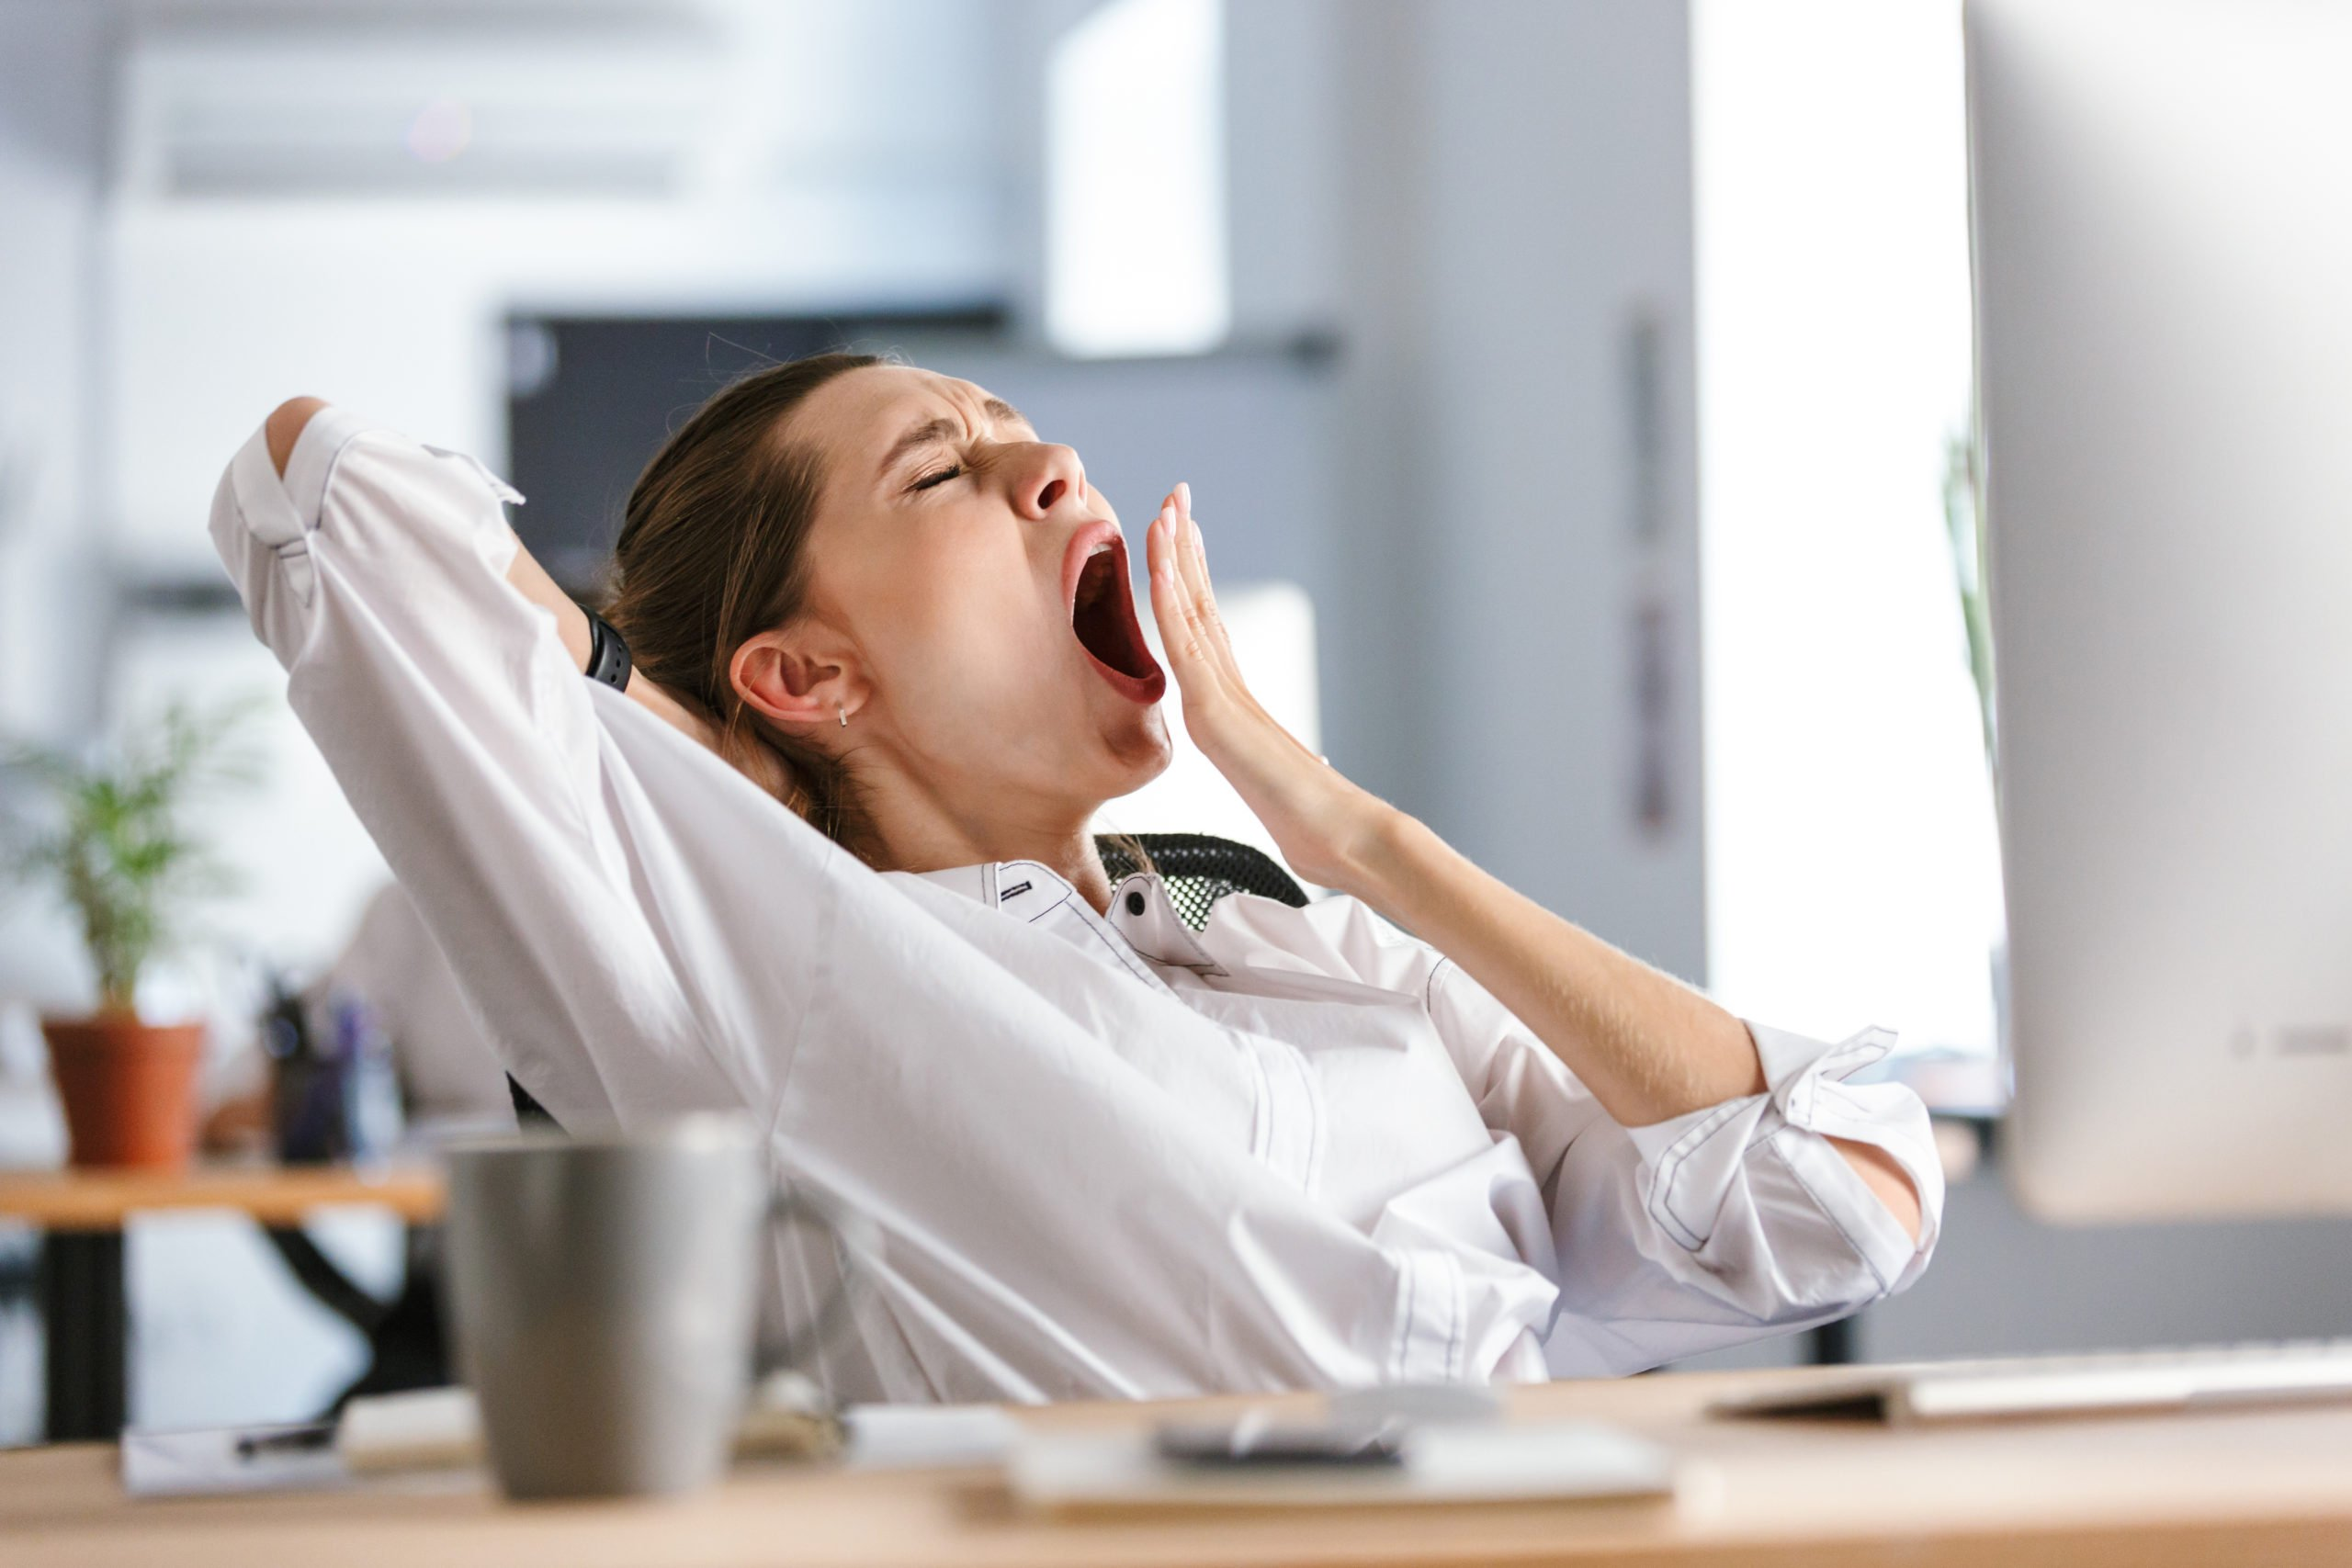 Fatigue: 45+ Tips To Help You Fight It